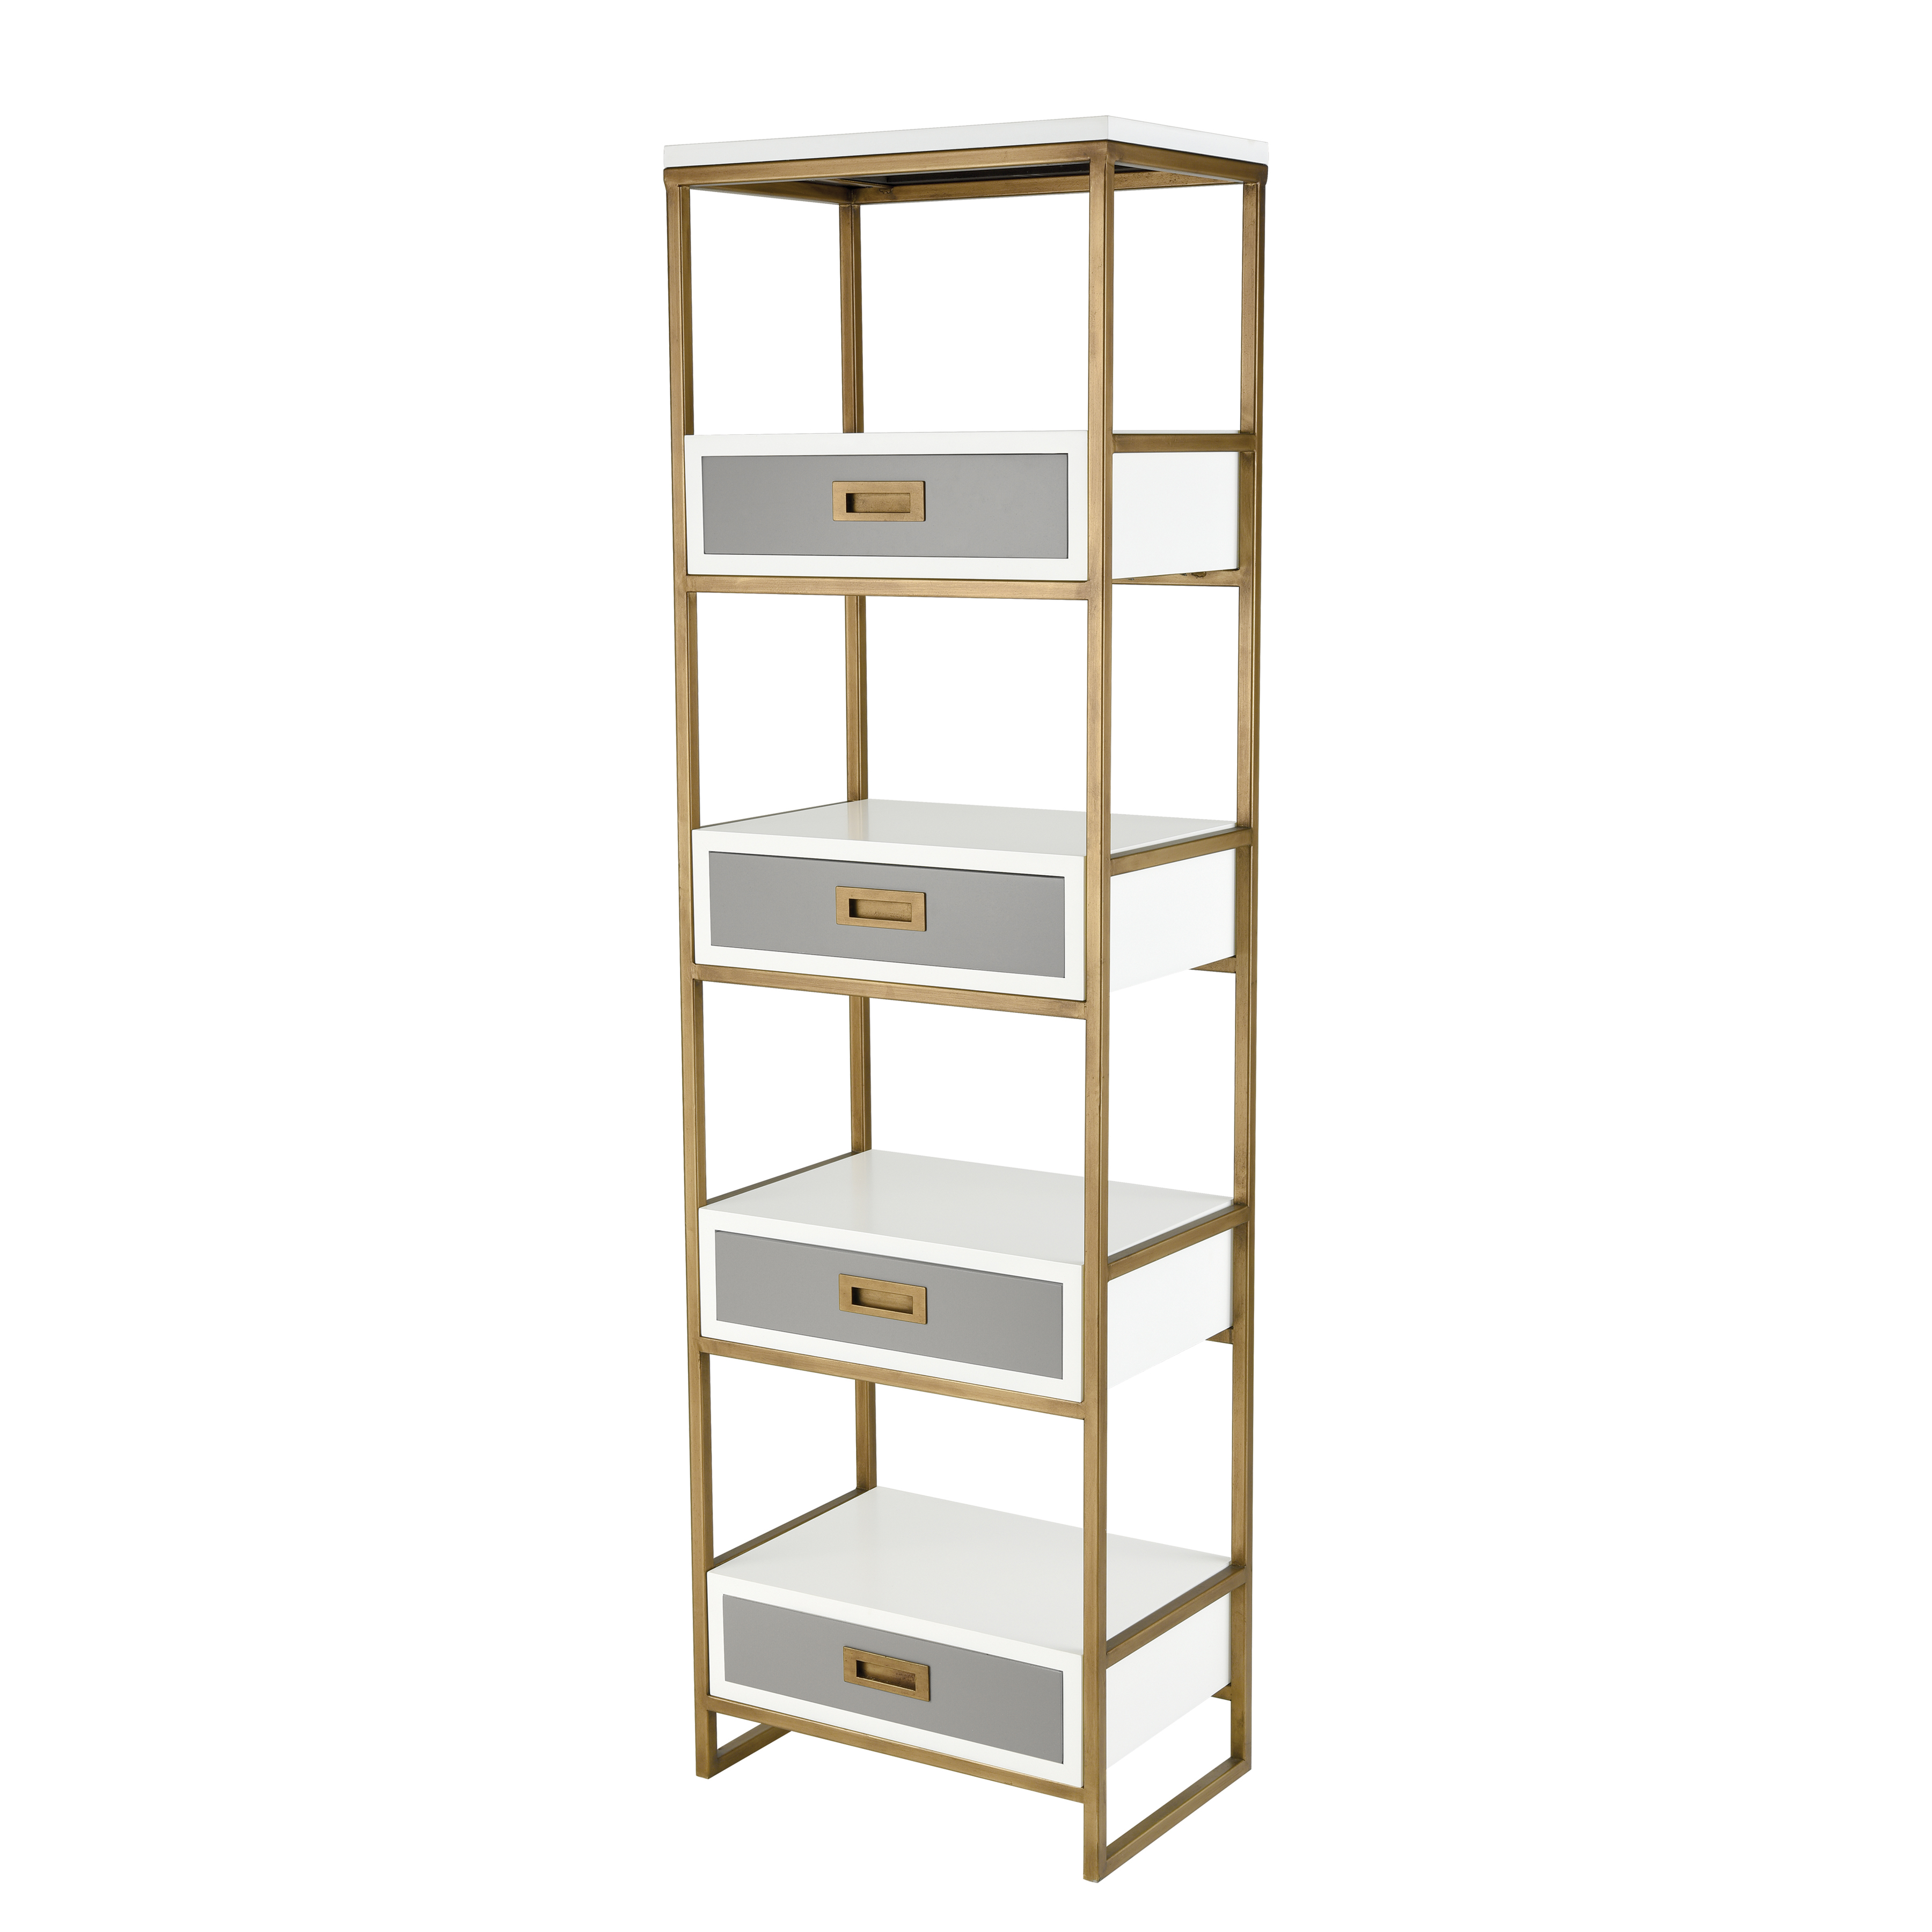 Olympus Shelving Unit | Elk Home